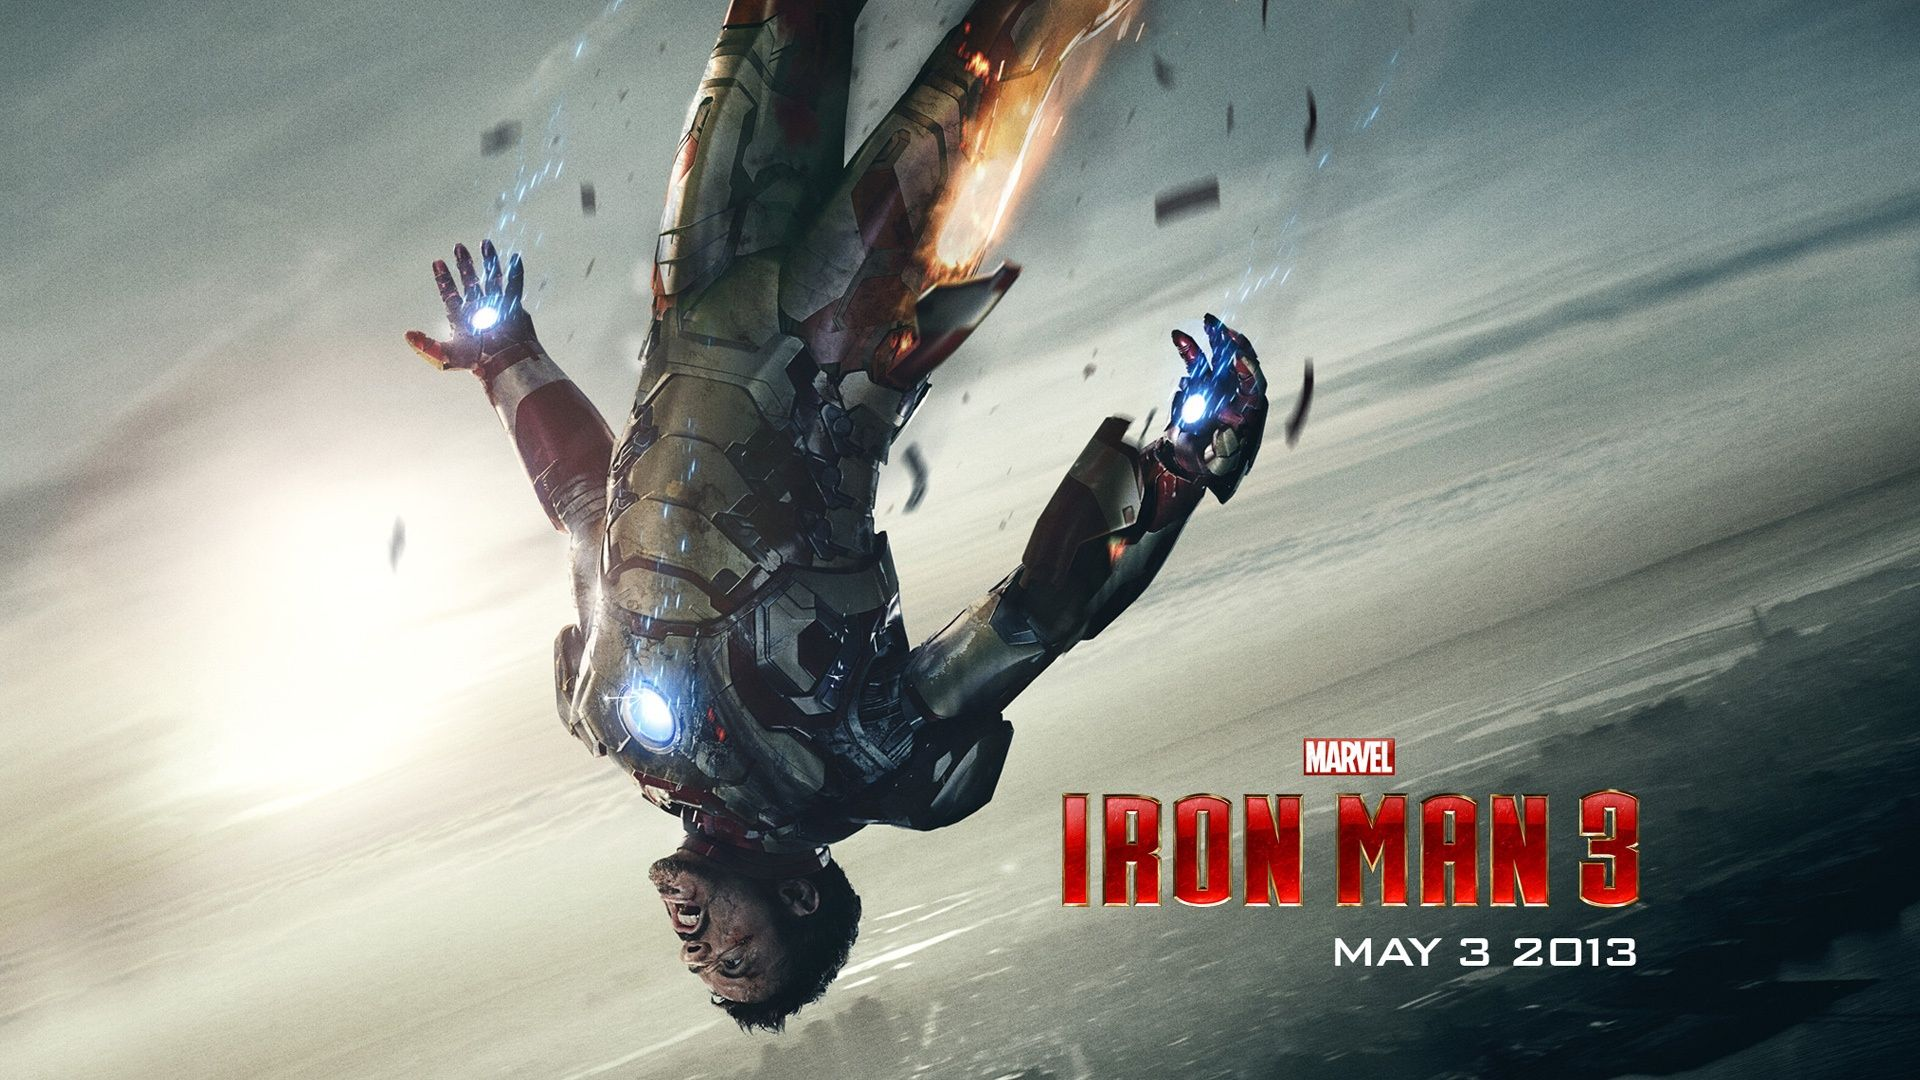 Tony Stark In Ironman 3 1080p Hd Wallpaper Movies